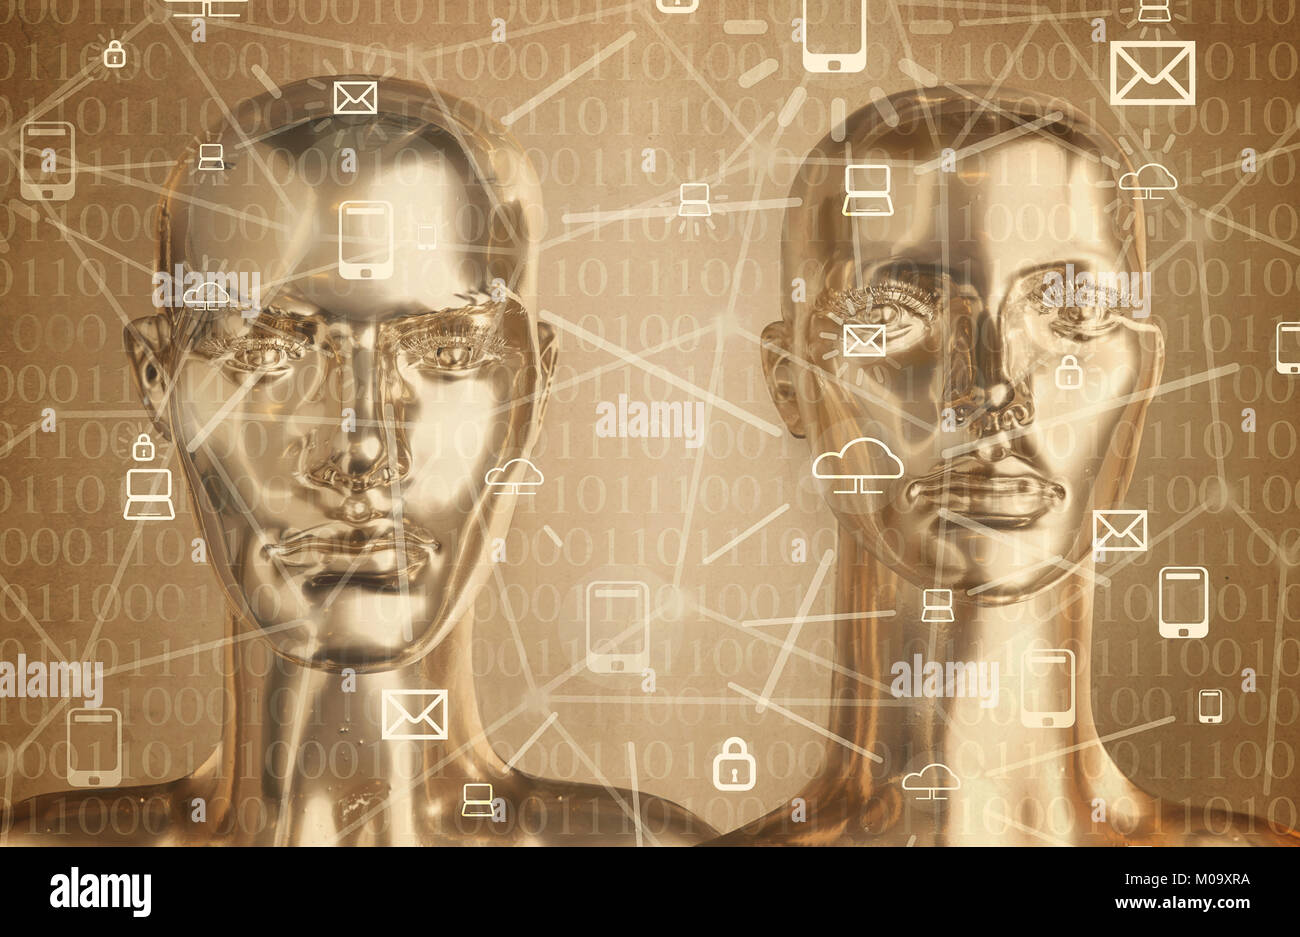 Artificial intelligence concept - globalization, Internet, network - Stock Image